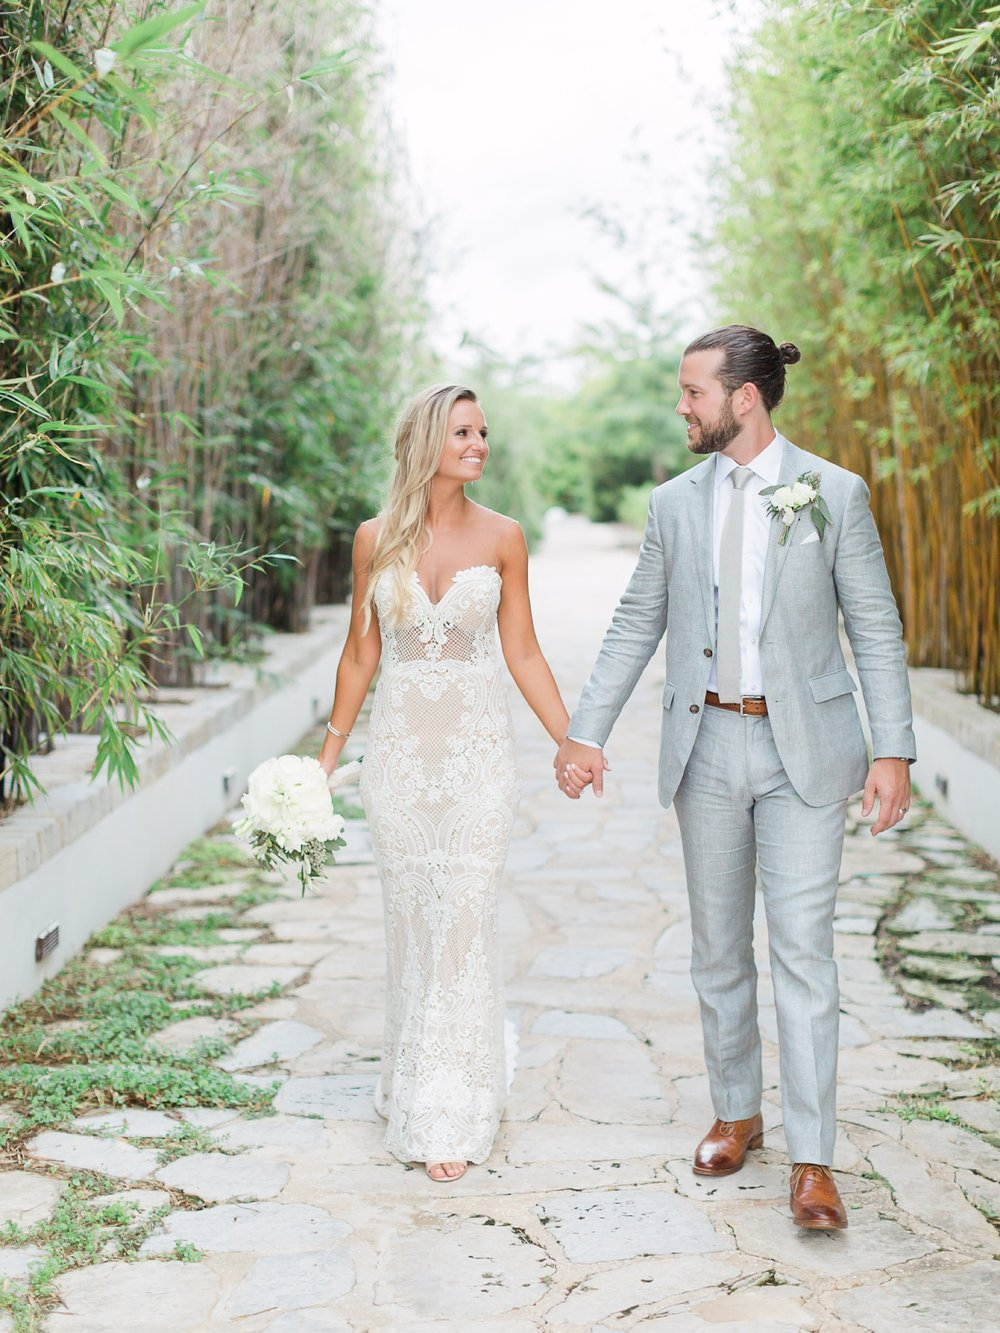 Jessie Barksdale Photography_tropical destination wedding_alys beach fl_lace wedding gown